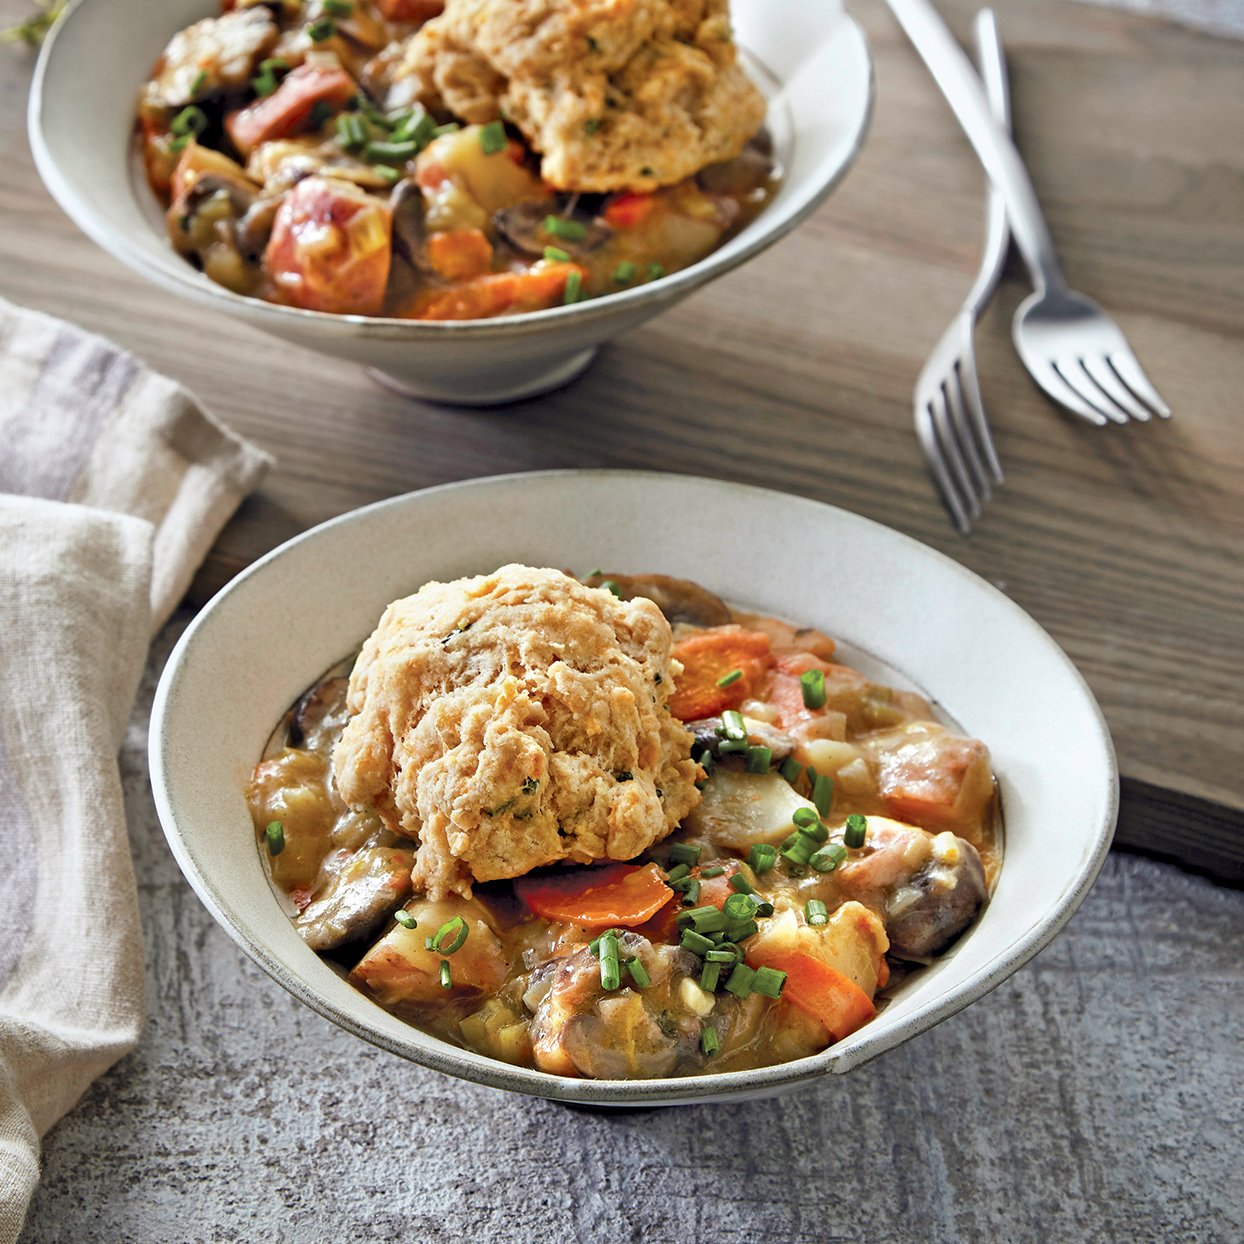 You'll reach for this recipe on early spring days for warmth and satisfaction. Even though this is a vegetarian pot pie, it's still hearty thanks to a whole-wheat crust and a filling made with potatoes, mushrooms, leeks and carrots.